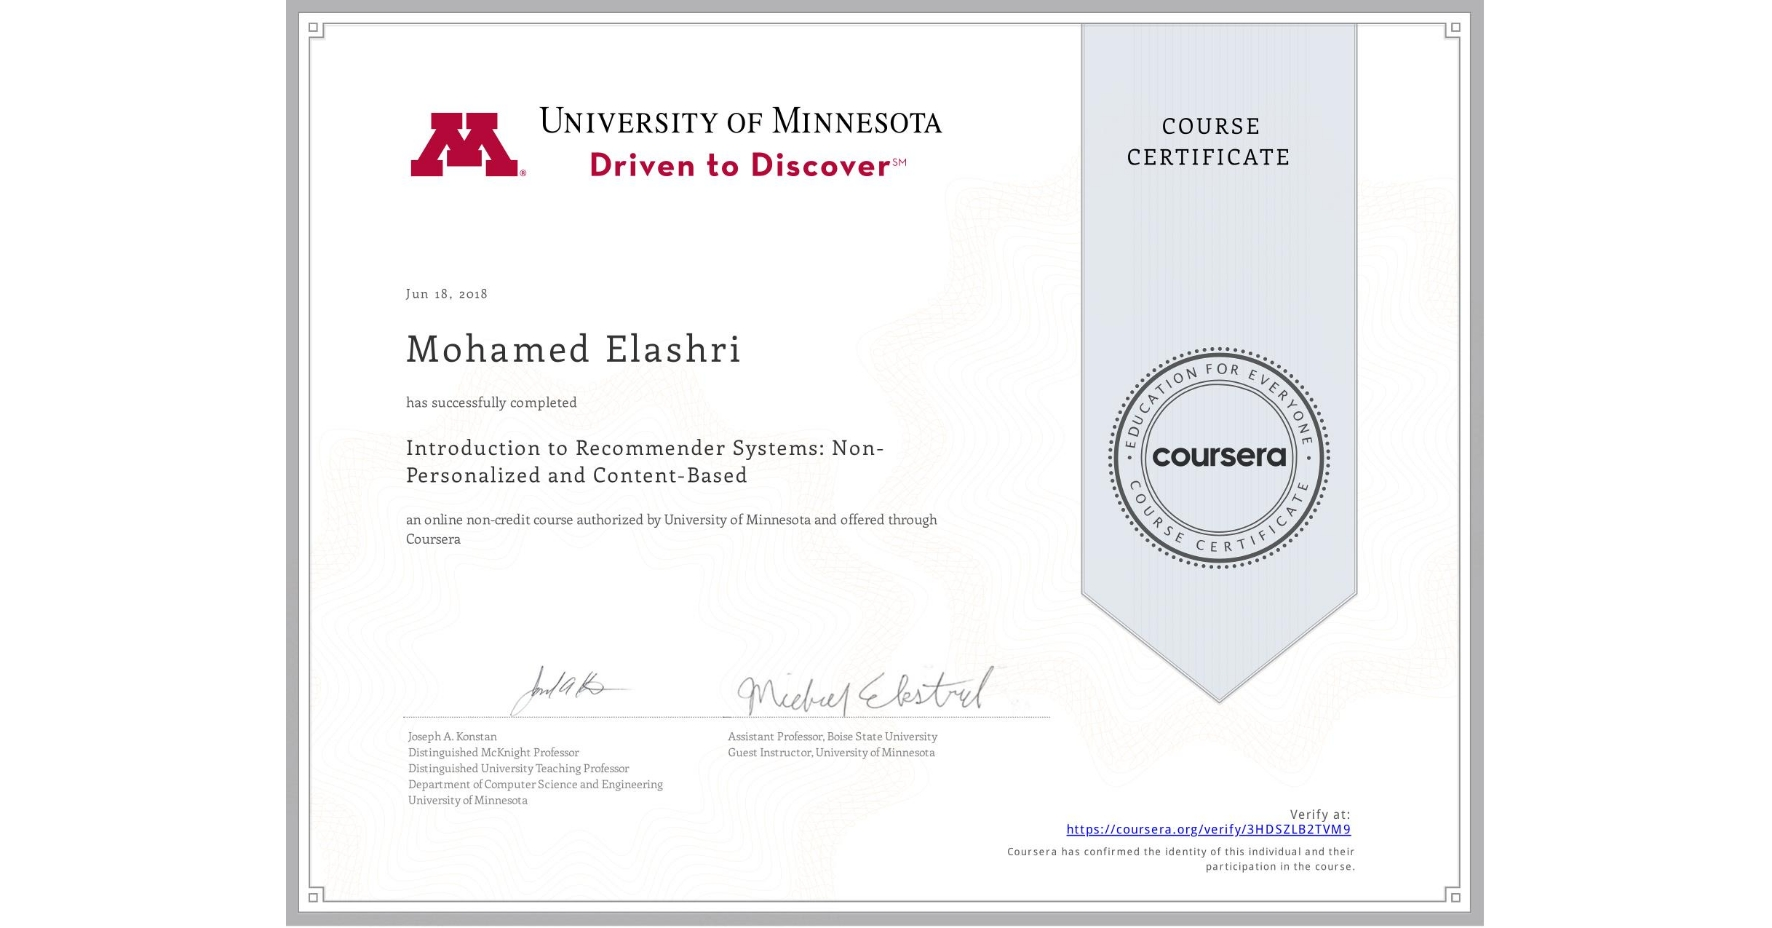 View certificate for Mohamed Elashri, Introduction to Recommender Systems:  Non-Personalized and Content-Based, an online non-credit course authorized by University of Minnesota and offered through Coursera